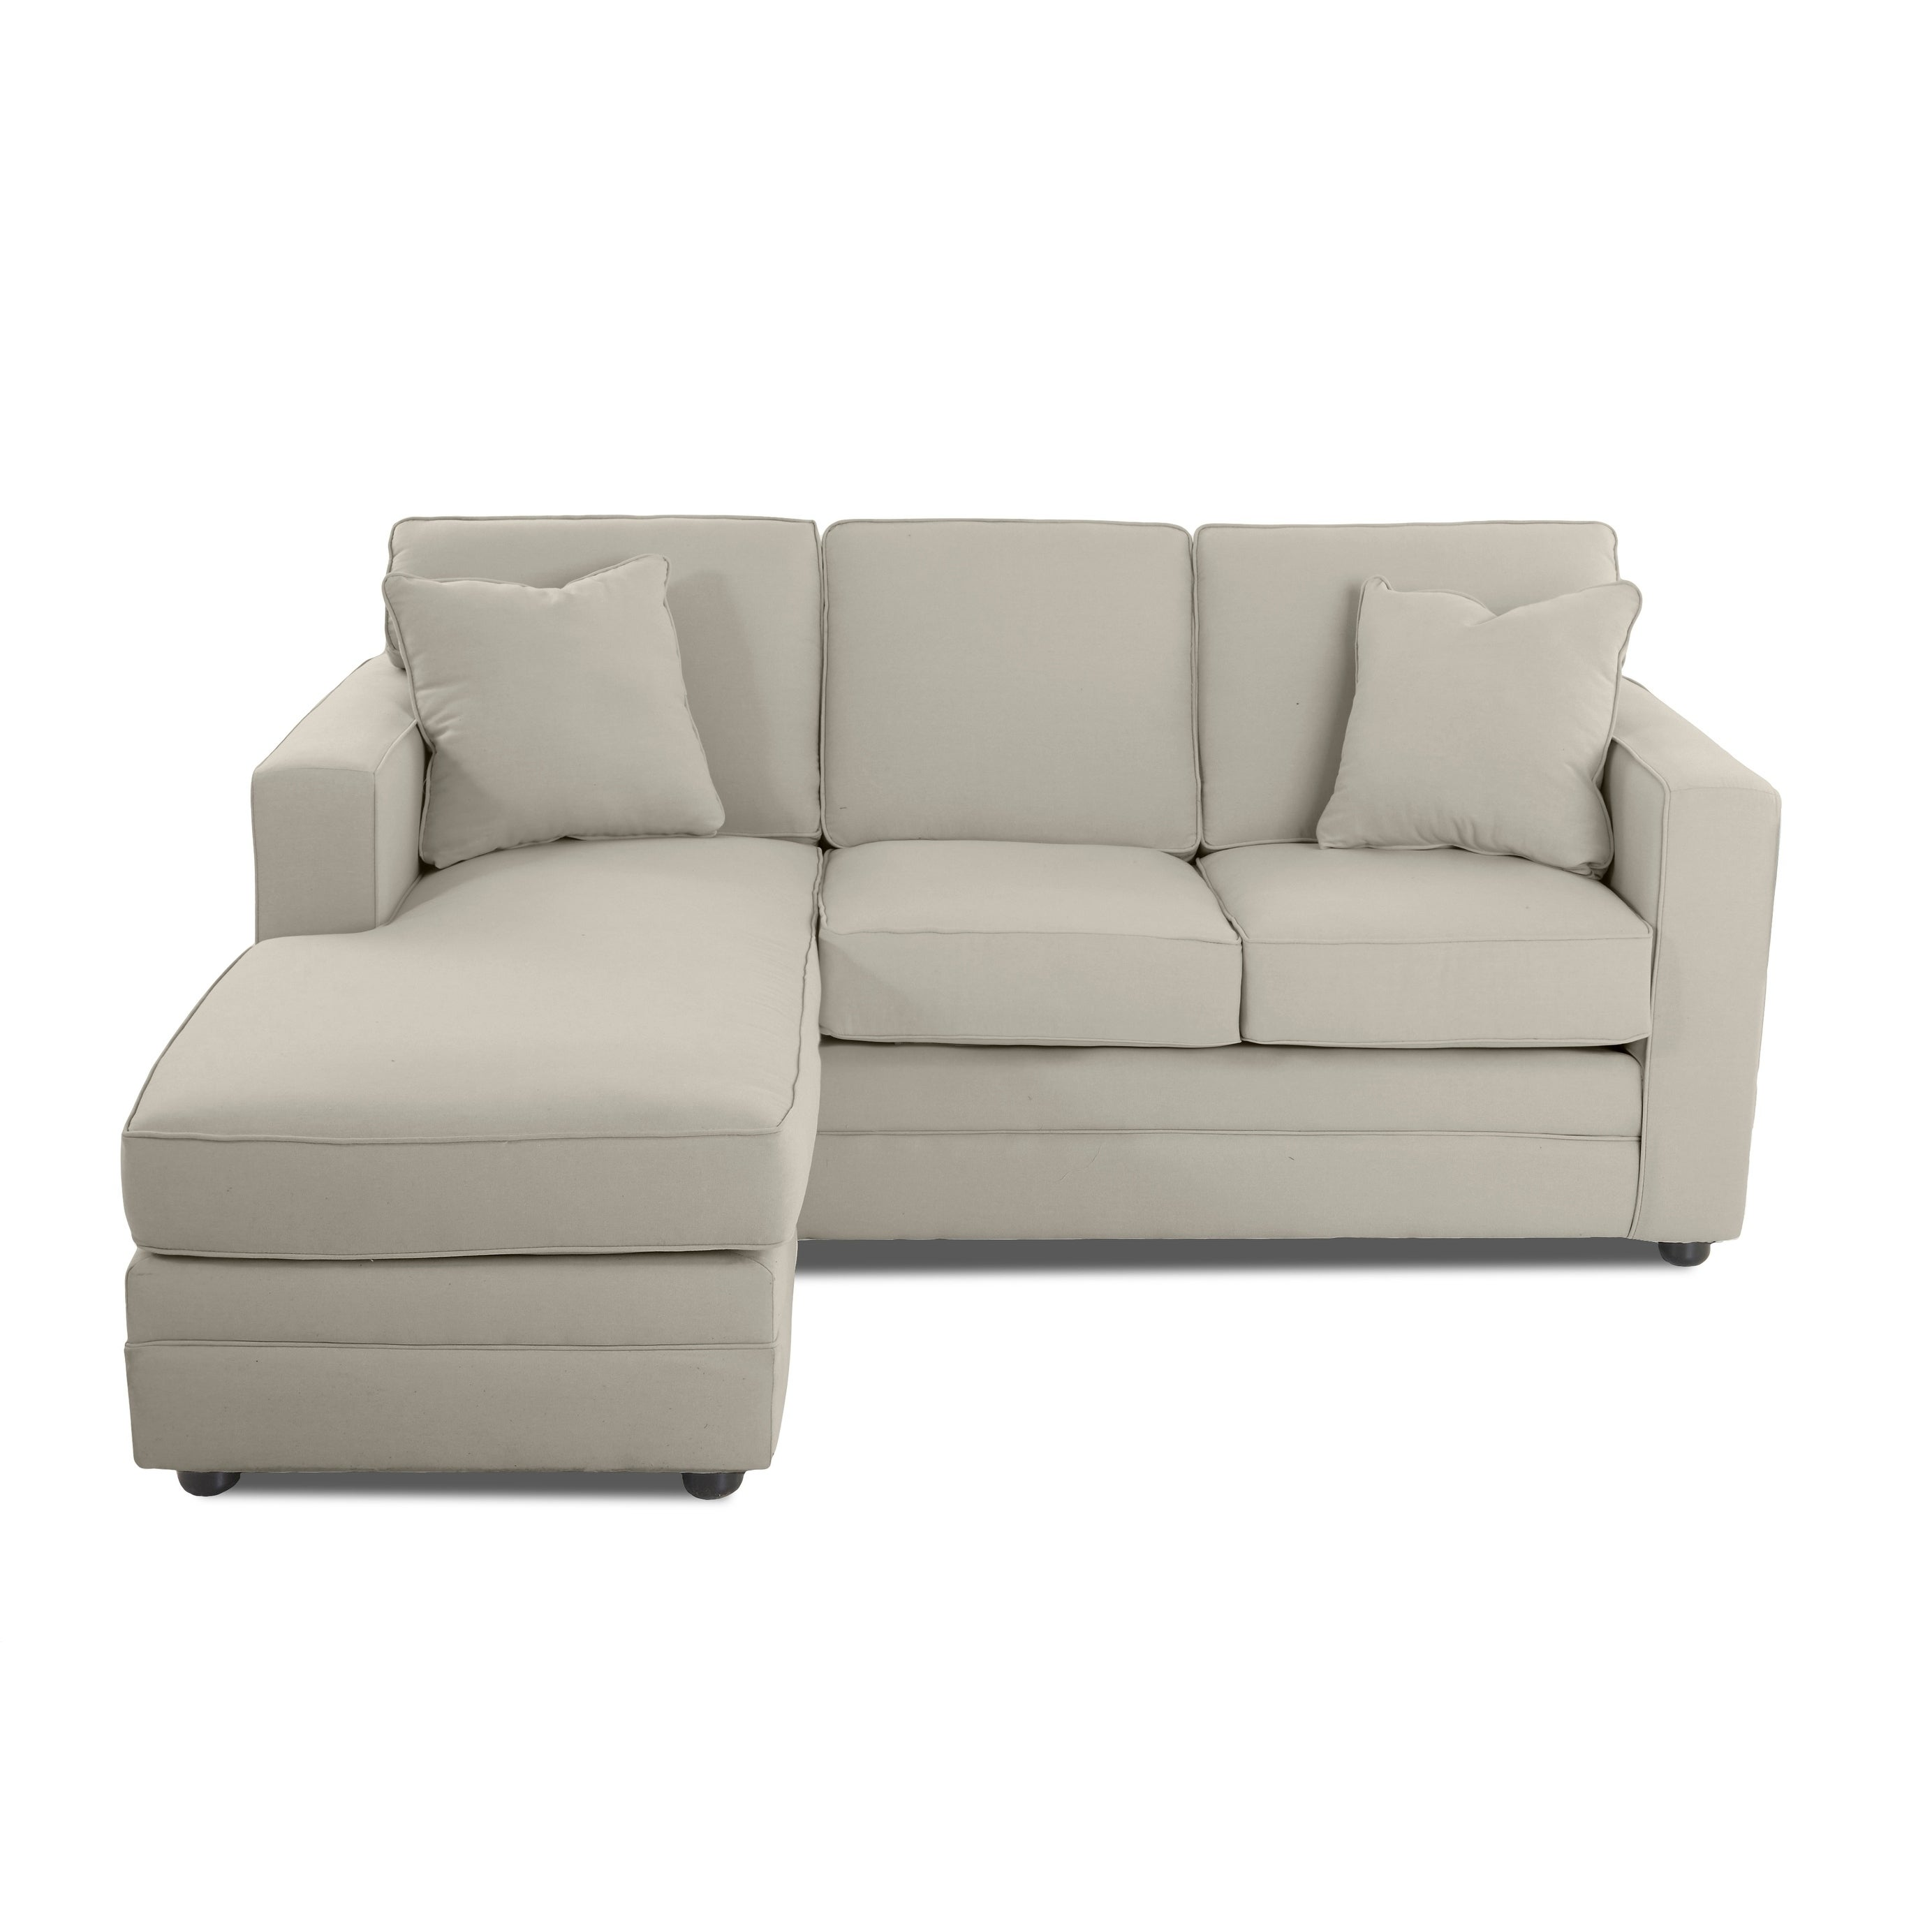 Tan Sectional Sofas Online At Our Best Living Room Furniture Deals